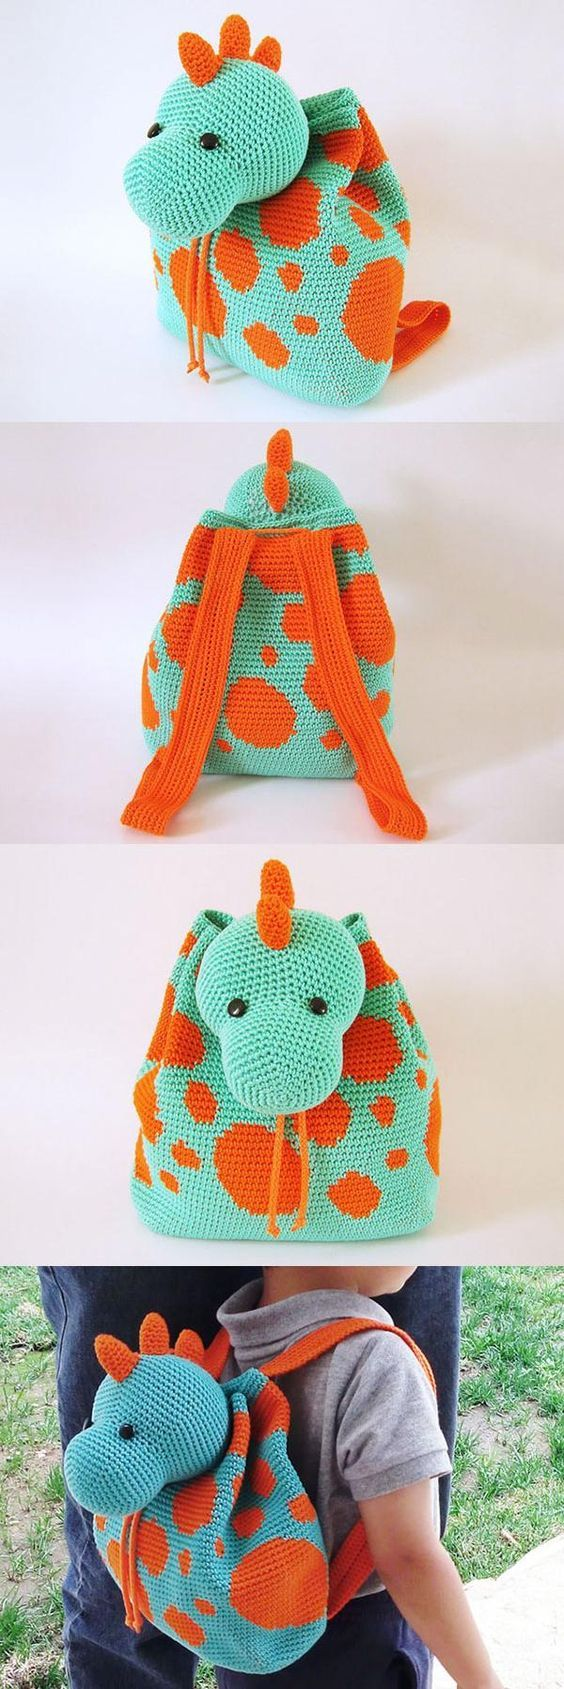 Dino Backpack Crochet Pattern                                                                                                                                                     Más